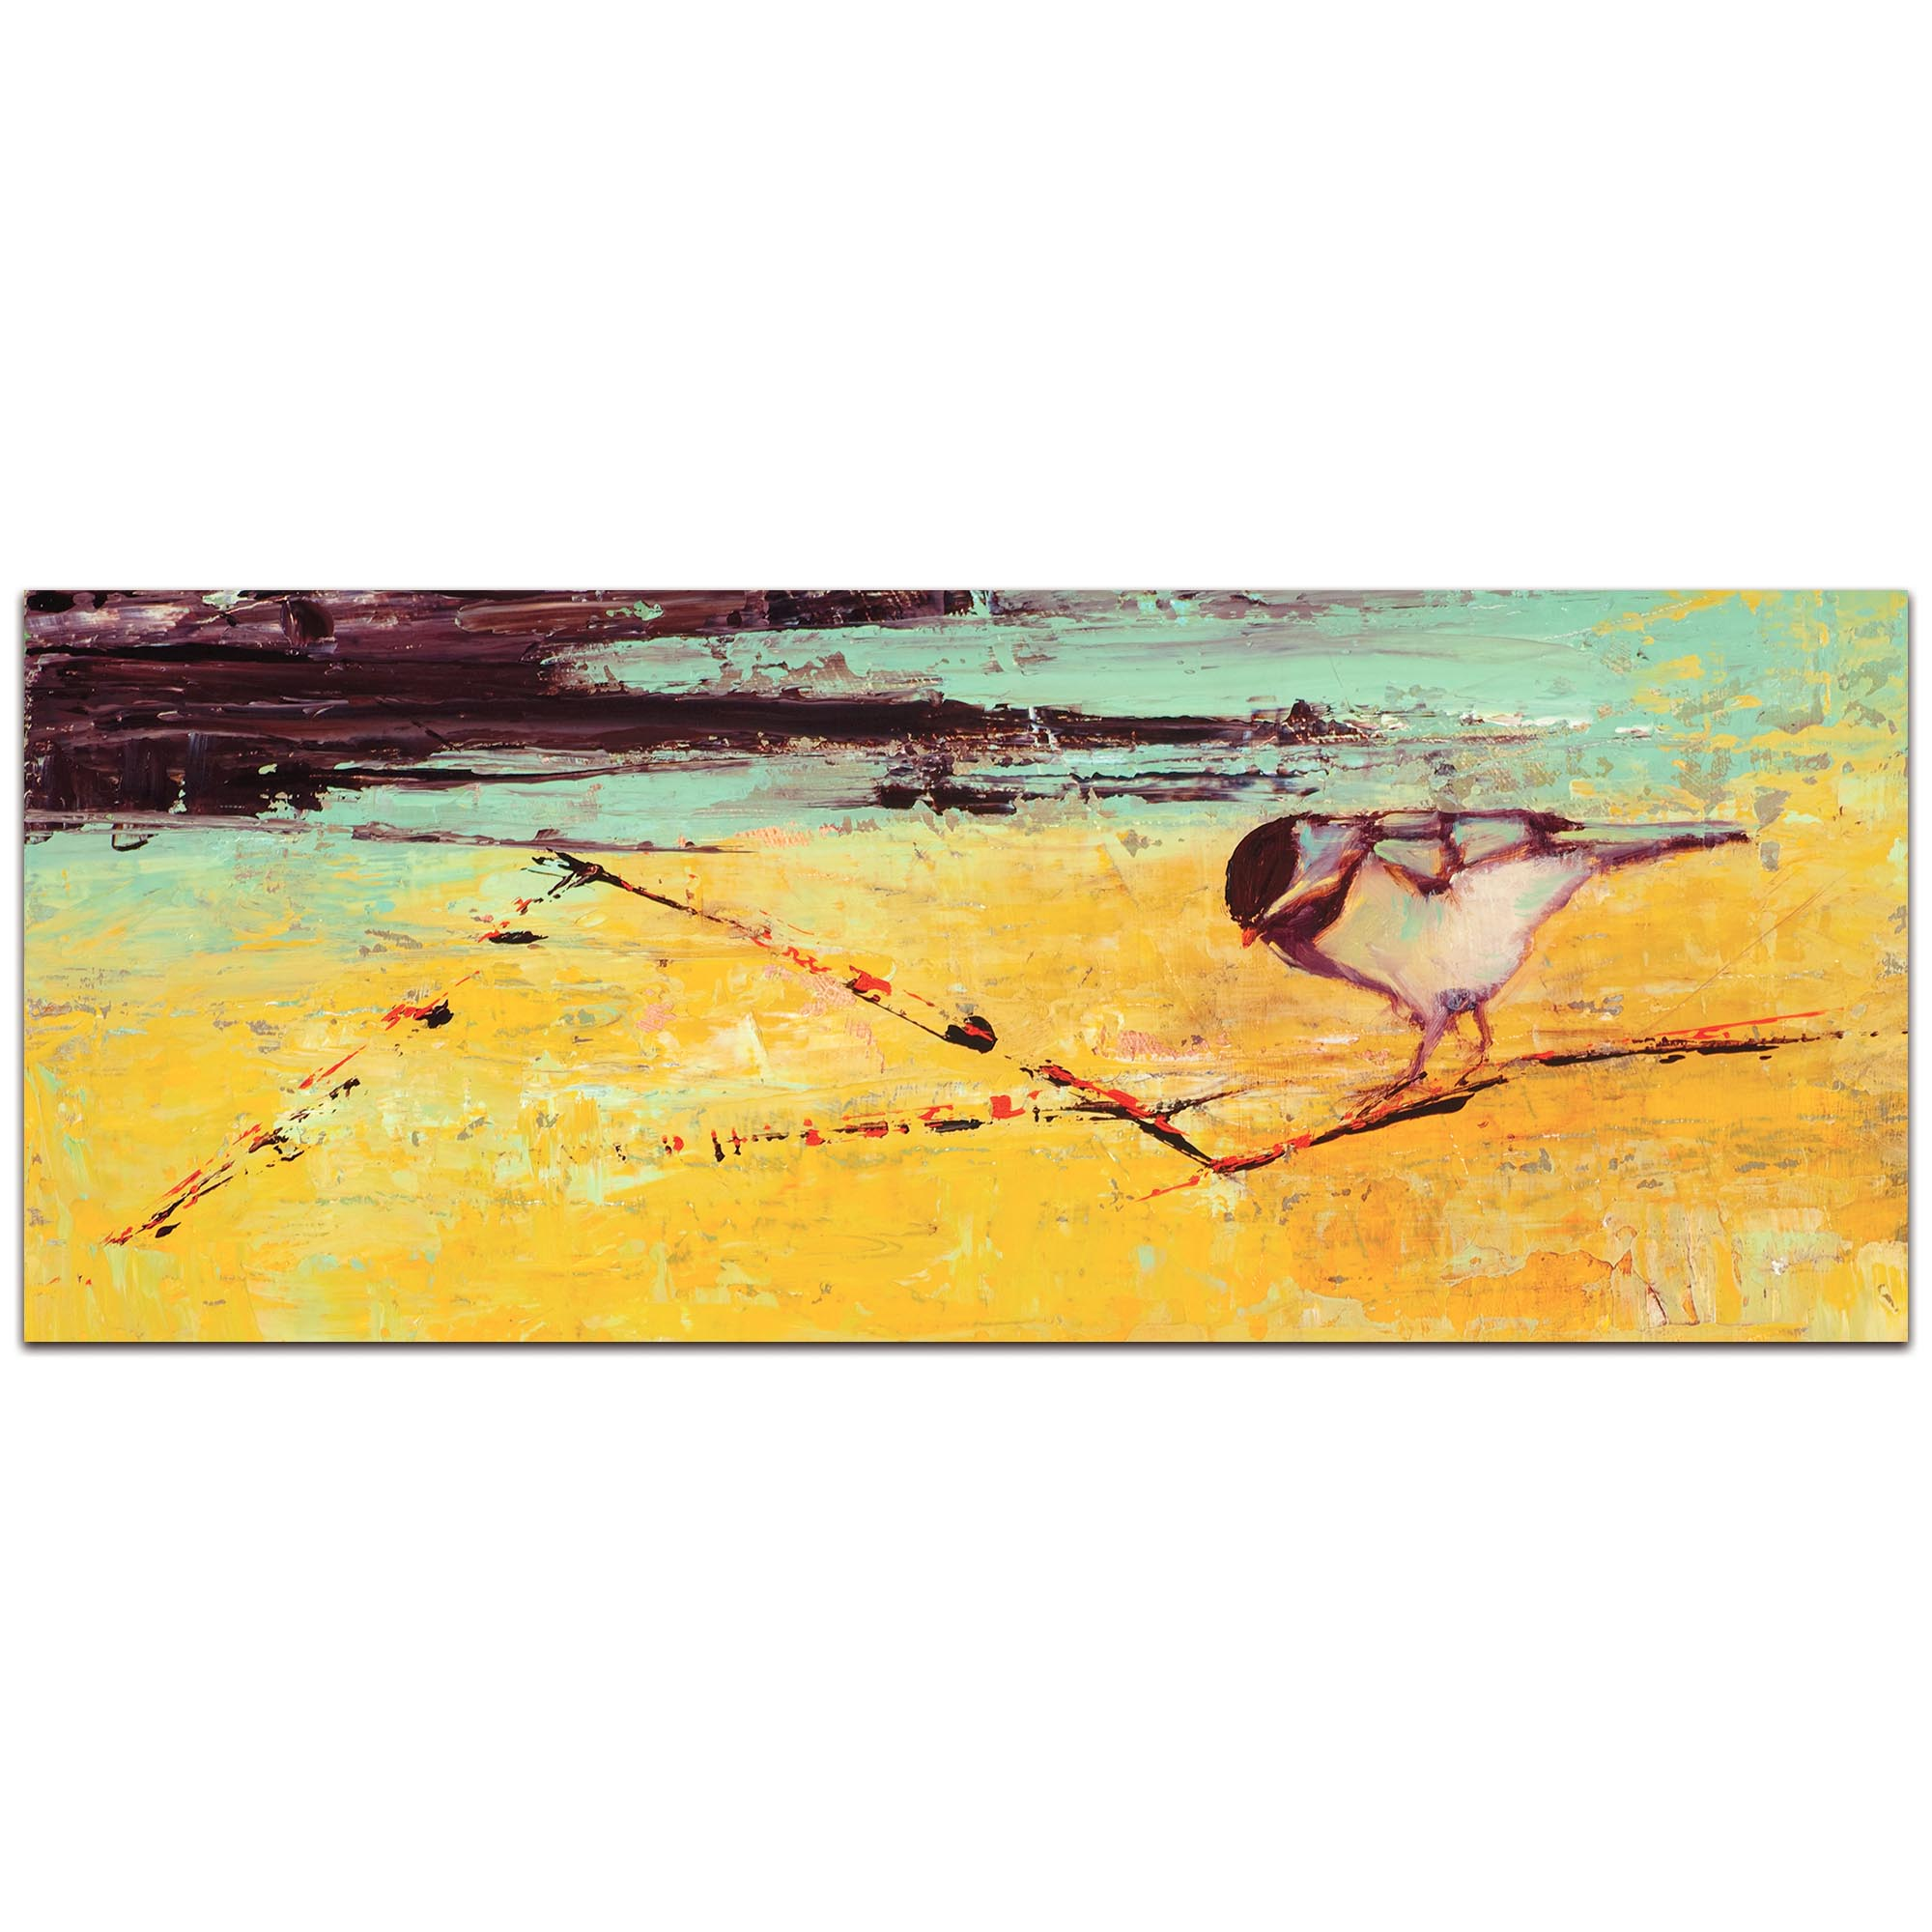 Contemporary Wall Art 'Bird on a Horizon v2' - Urban Birds Decor on Metal or Plexiglass